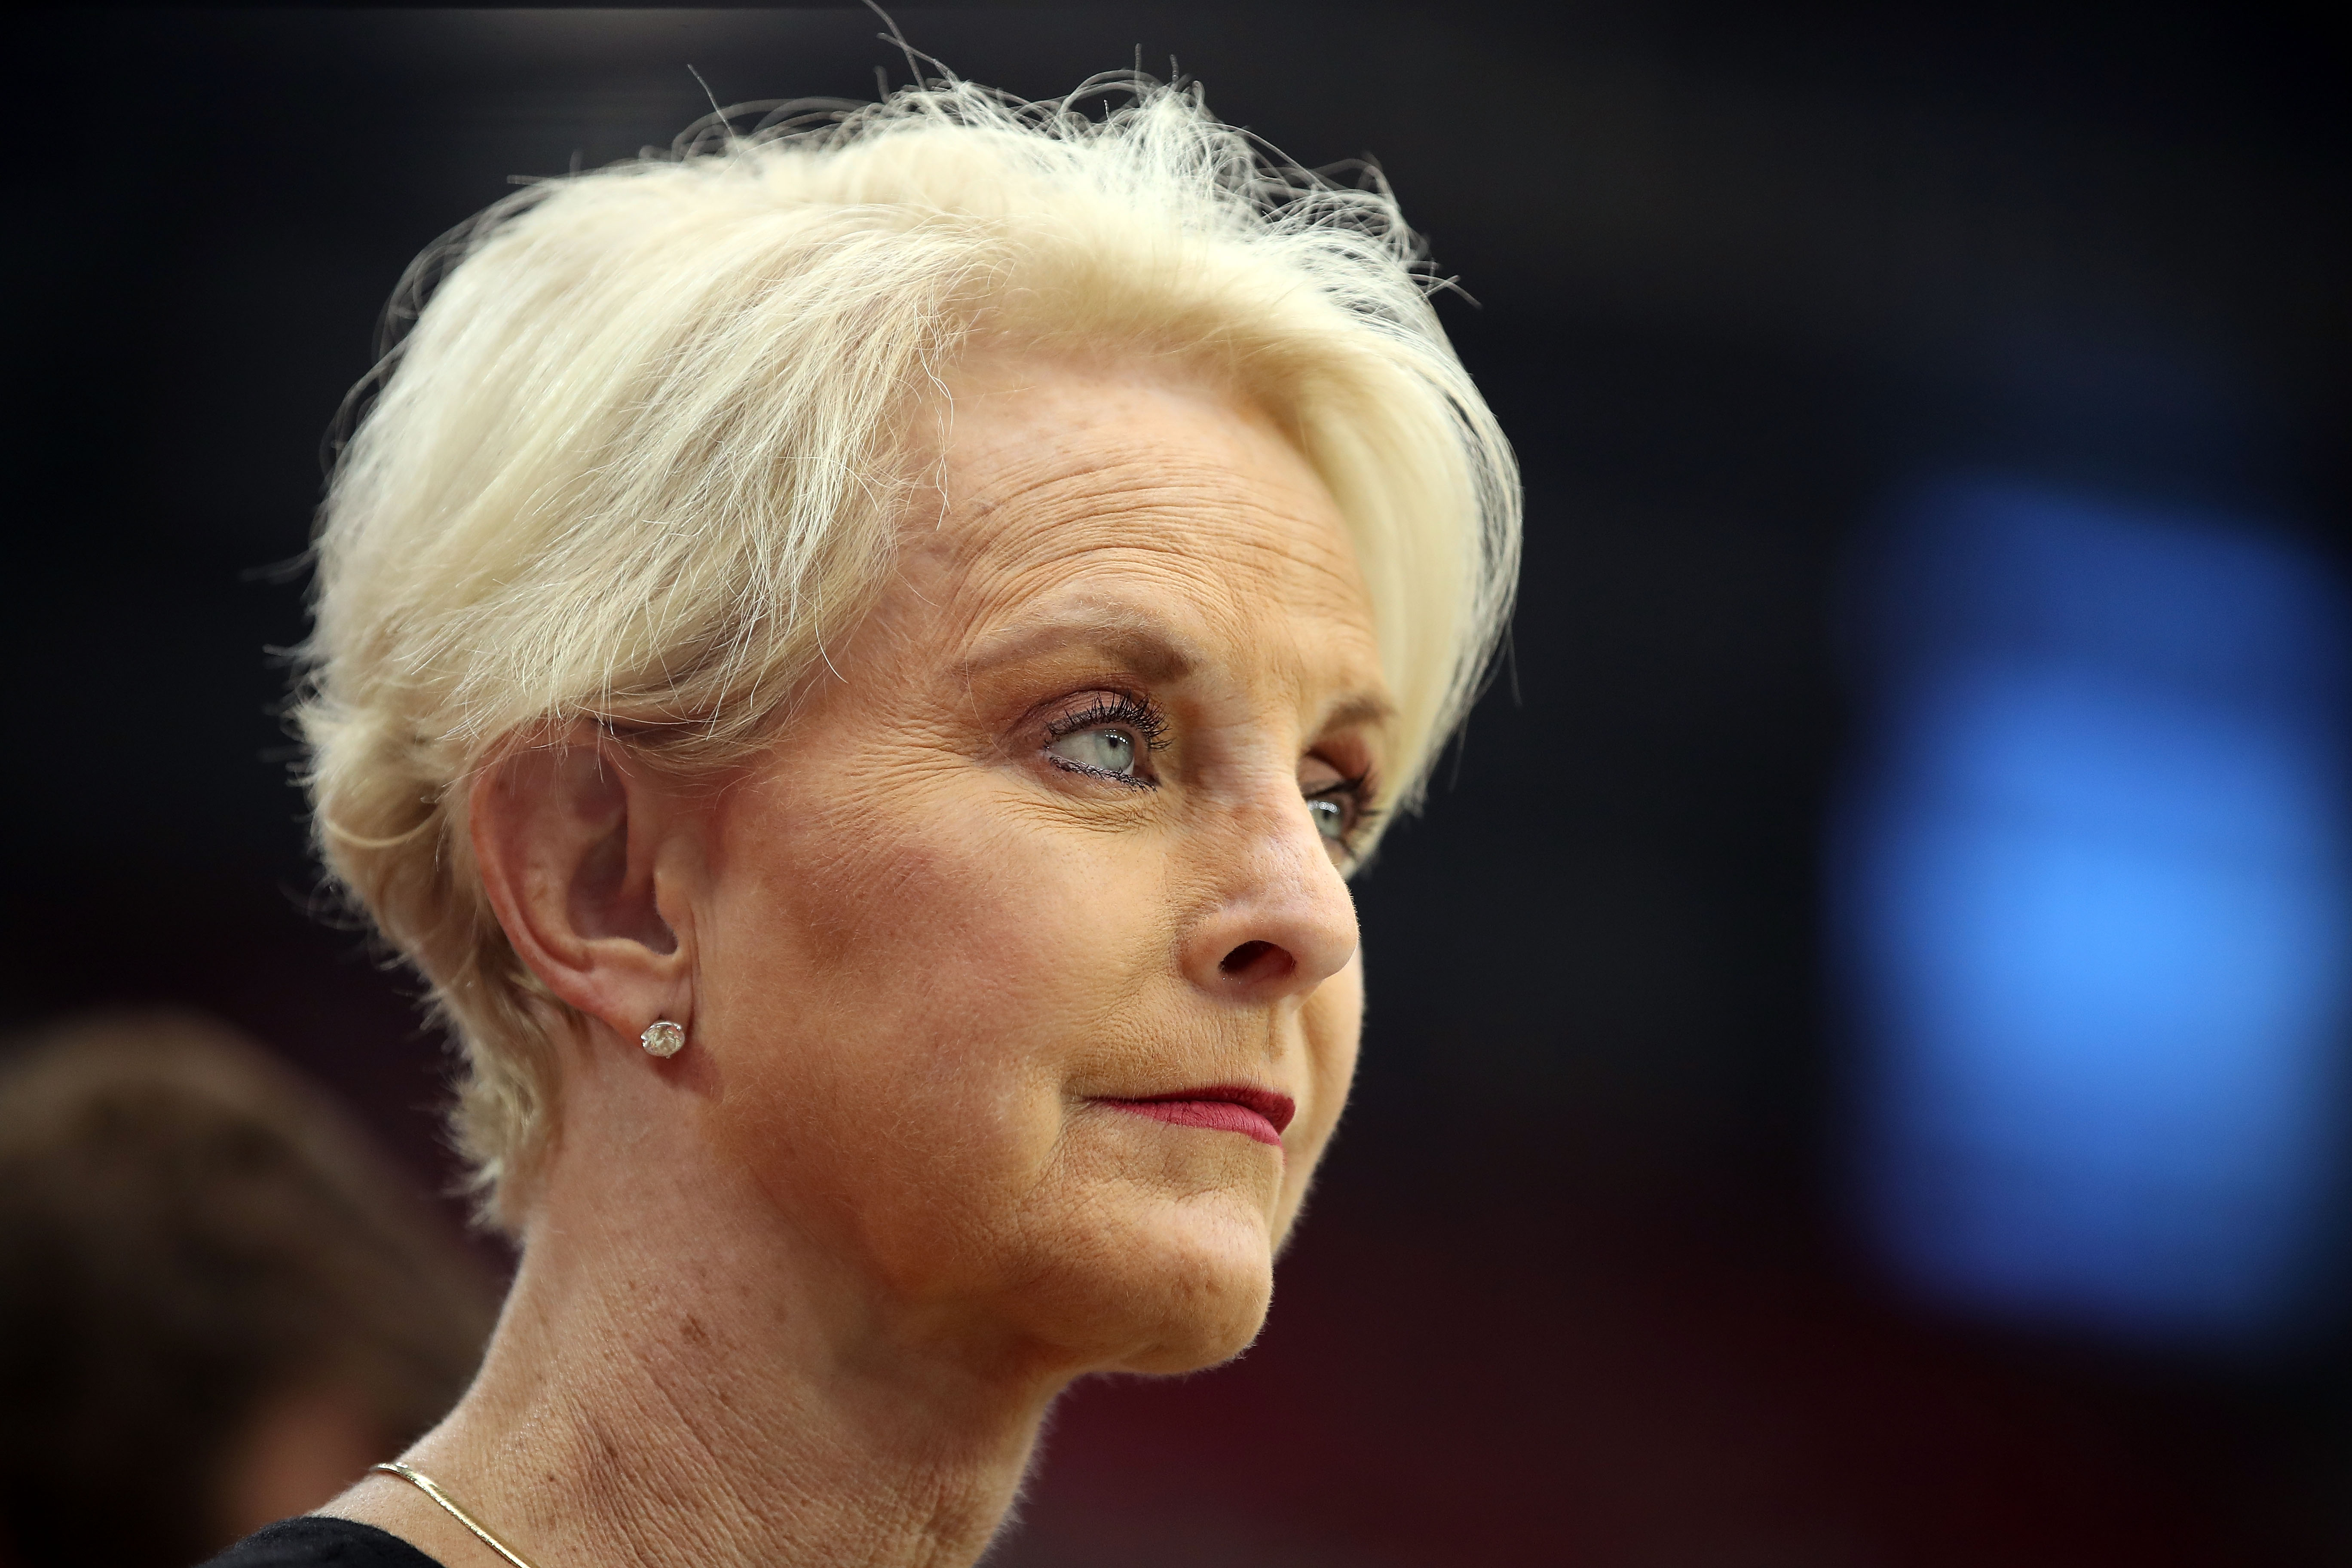 Cindy McCain, wife of the late U.S. Senator John McCain stands on the sidelines before the game between the Arizona Cardinals and the Washington Redskins at State Farm Stadium on September 9, 2018 in Glendale, Arizona.